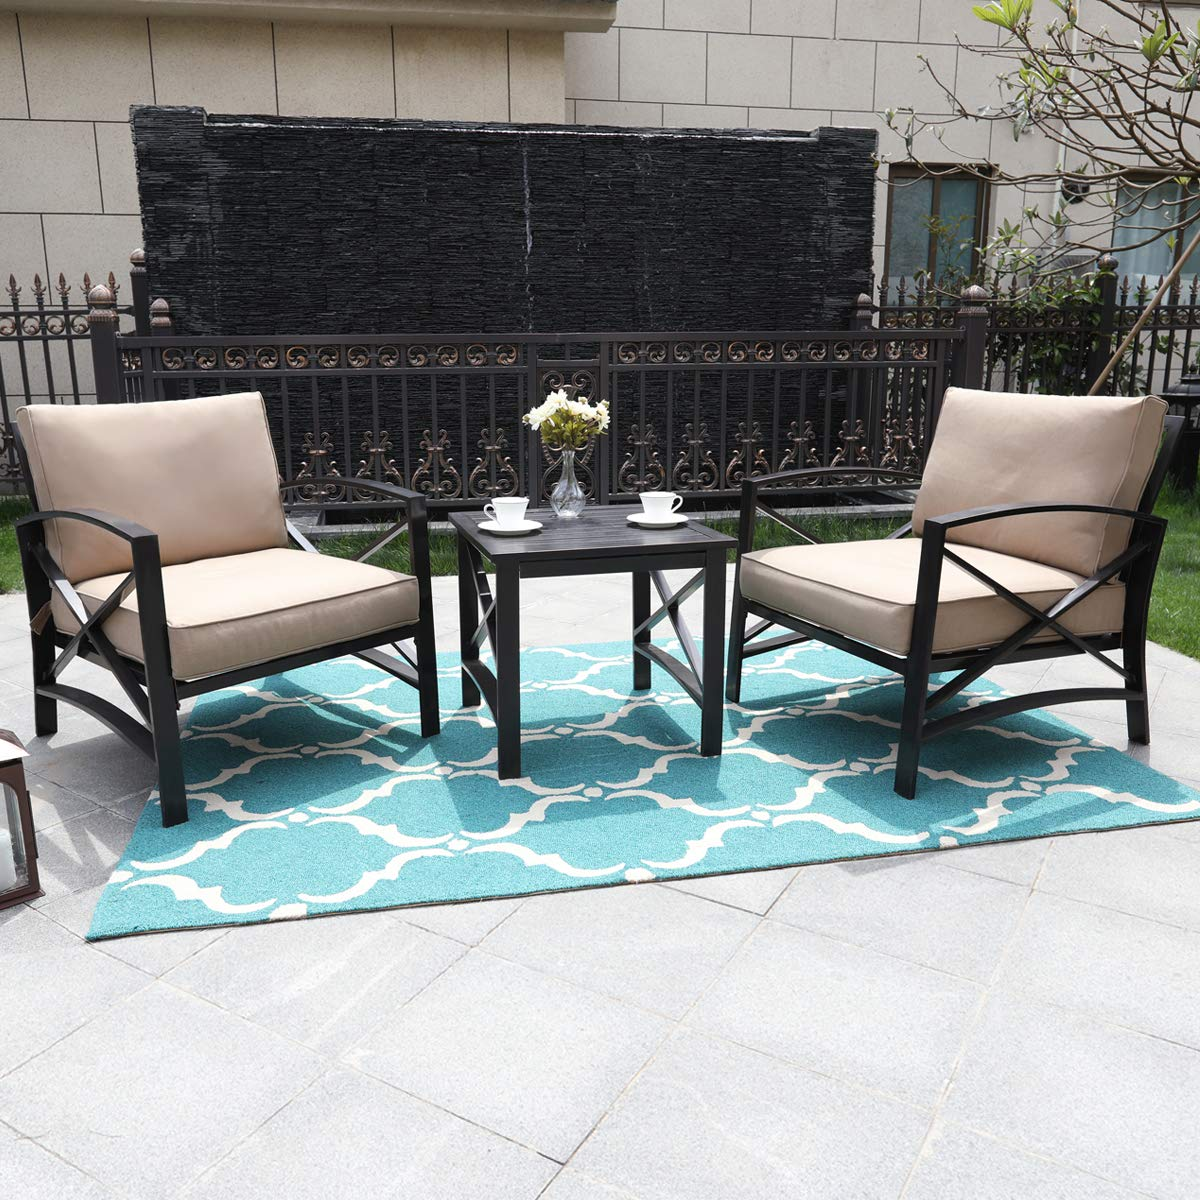 Backyard or Living Room Garden PHI VILLA Outdoor Patio Metal Extra Wide Relaxing Deep Seating Sofa Chairs and Side Table Set of 3 with Thick Cushions fit Porch